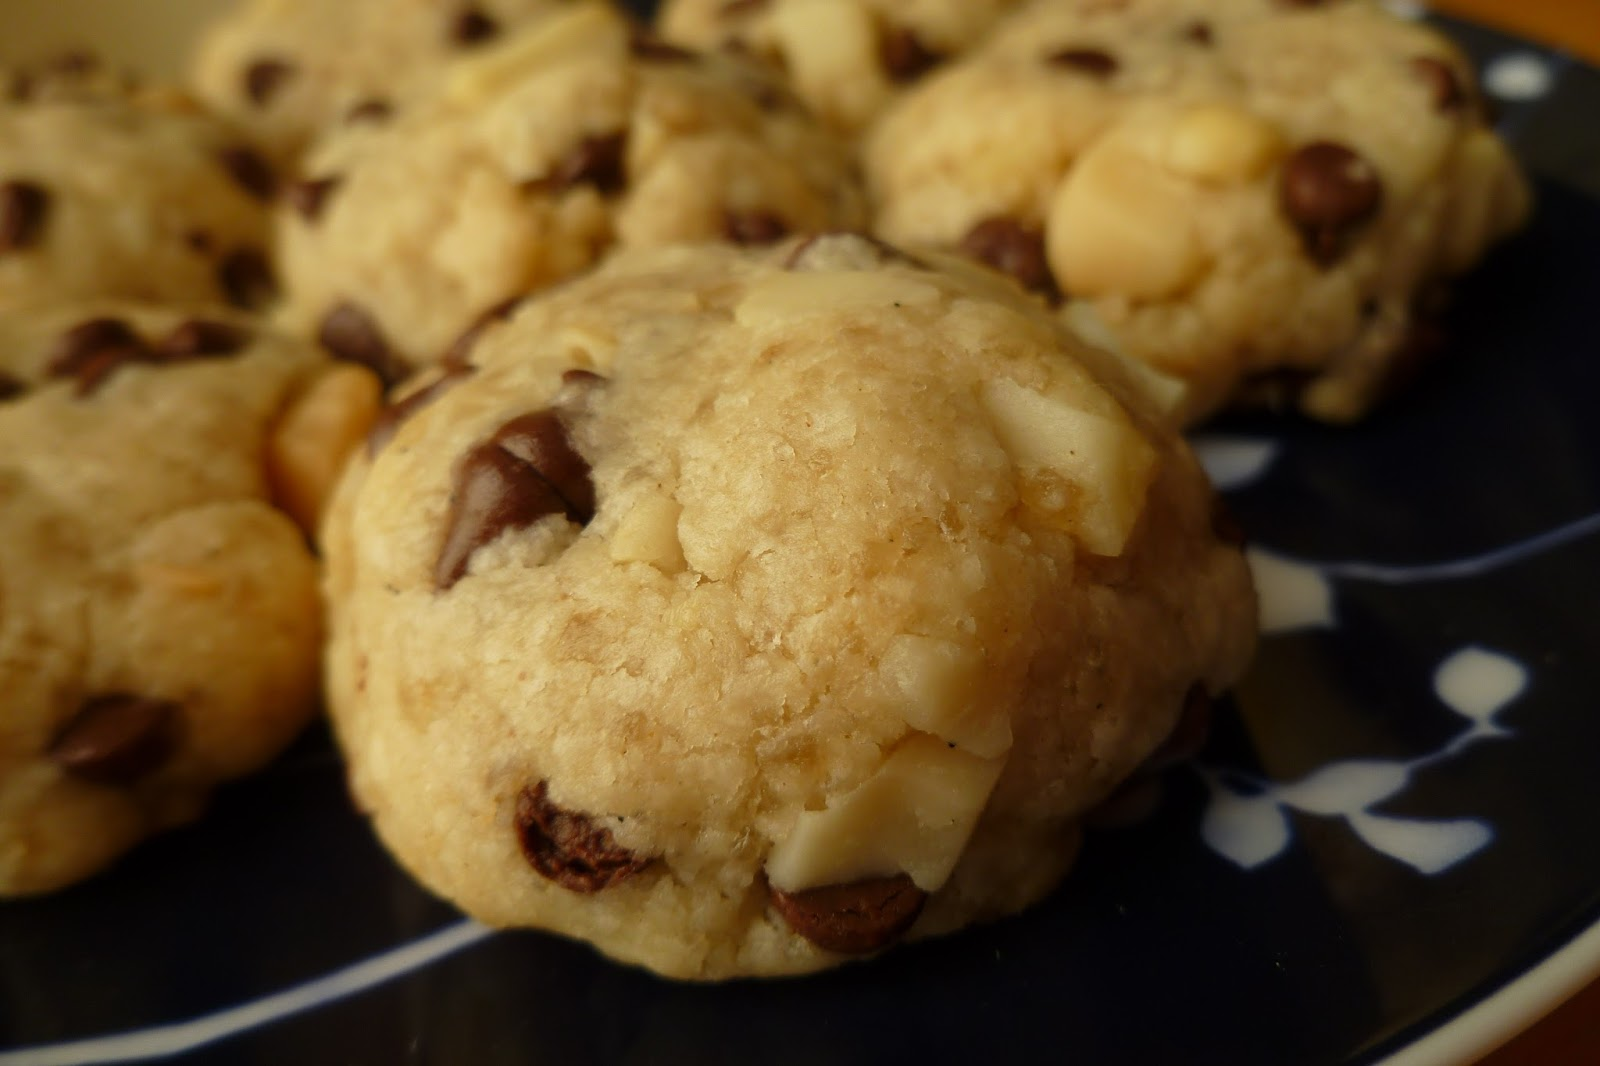 The Pastry Chef's Baking: Macadamia Chocolate Chip ...